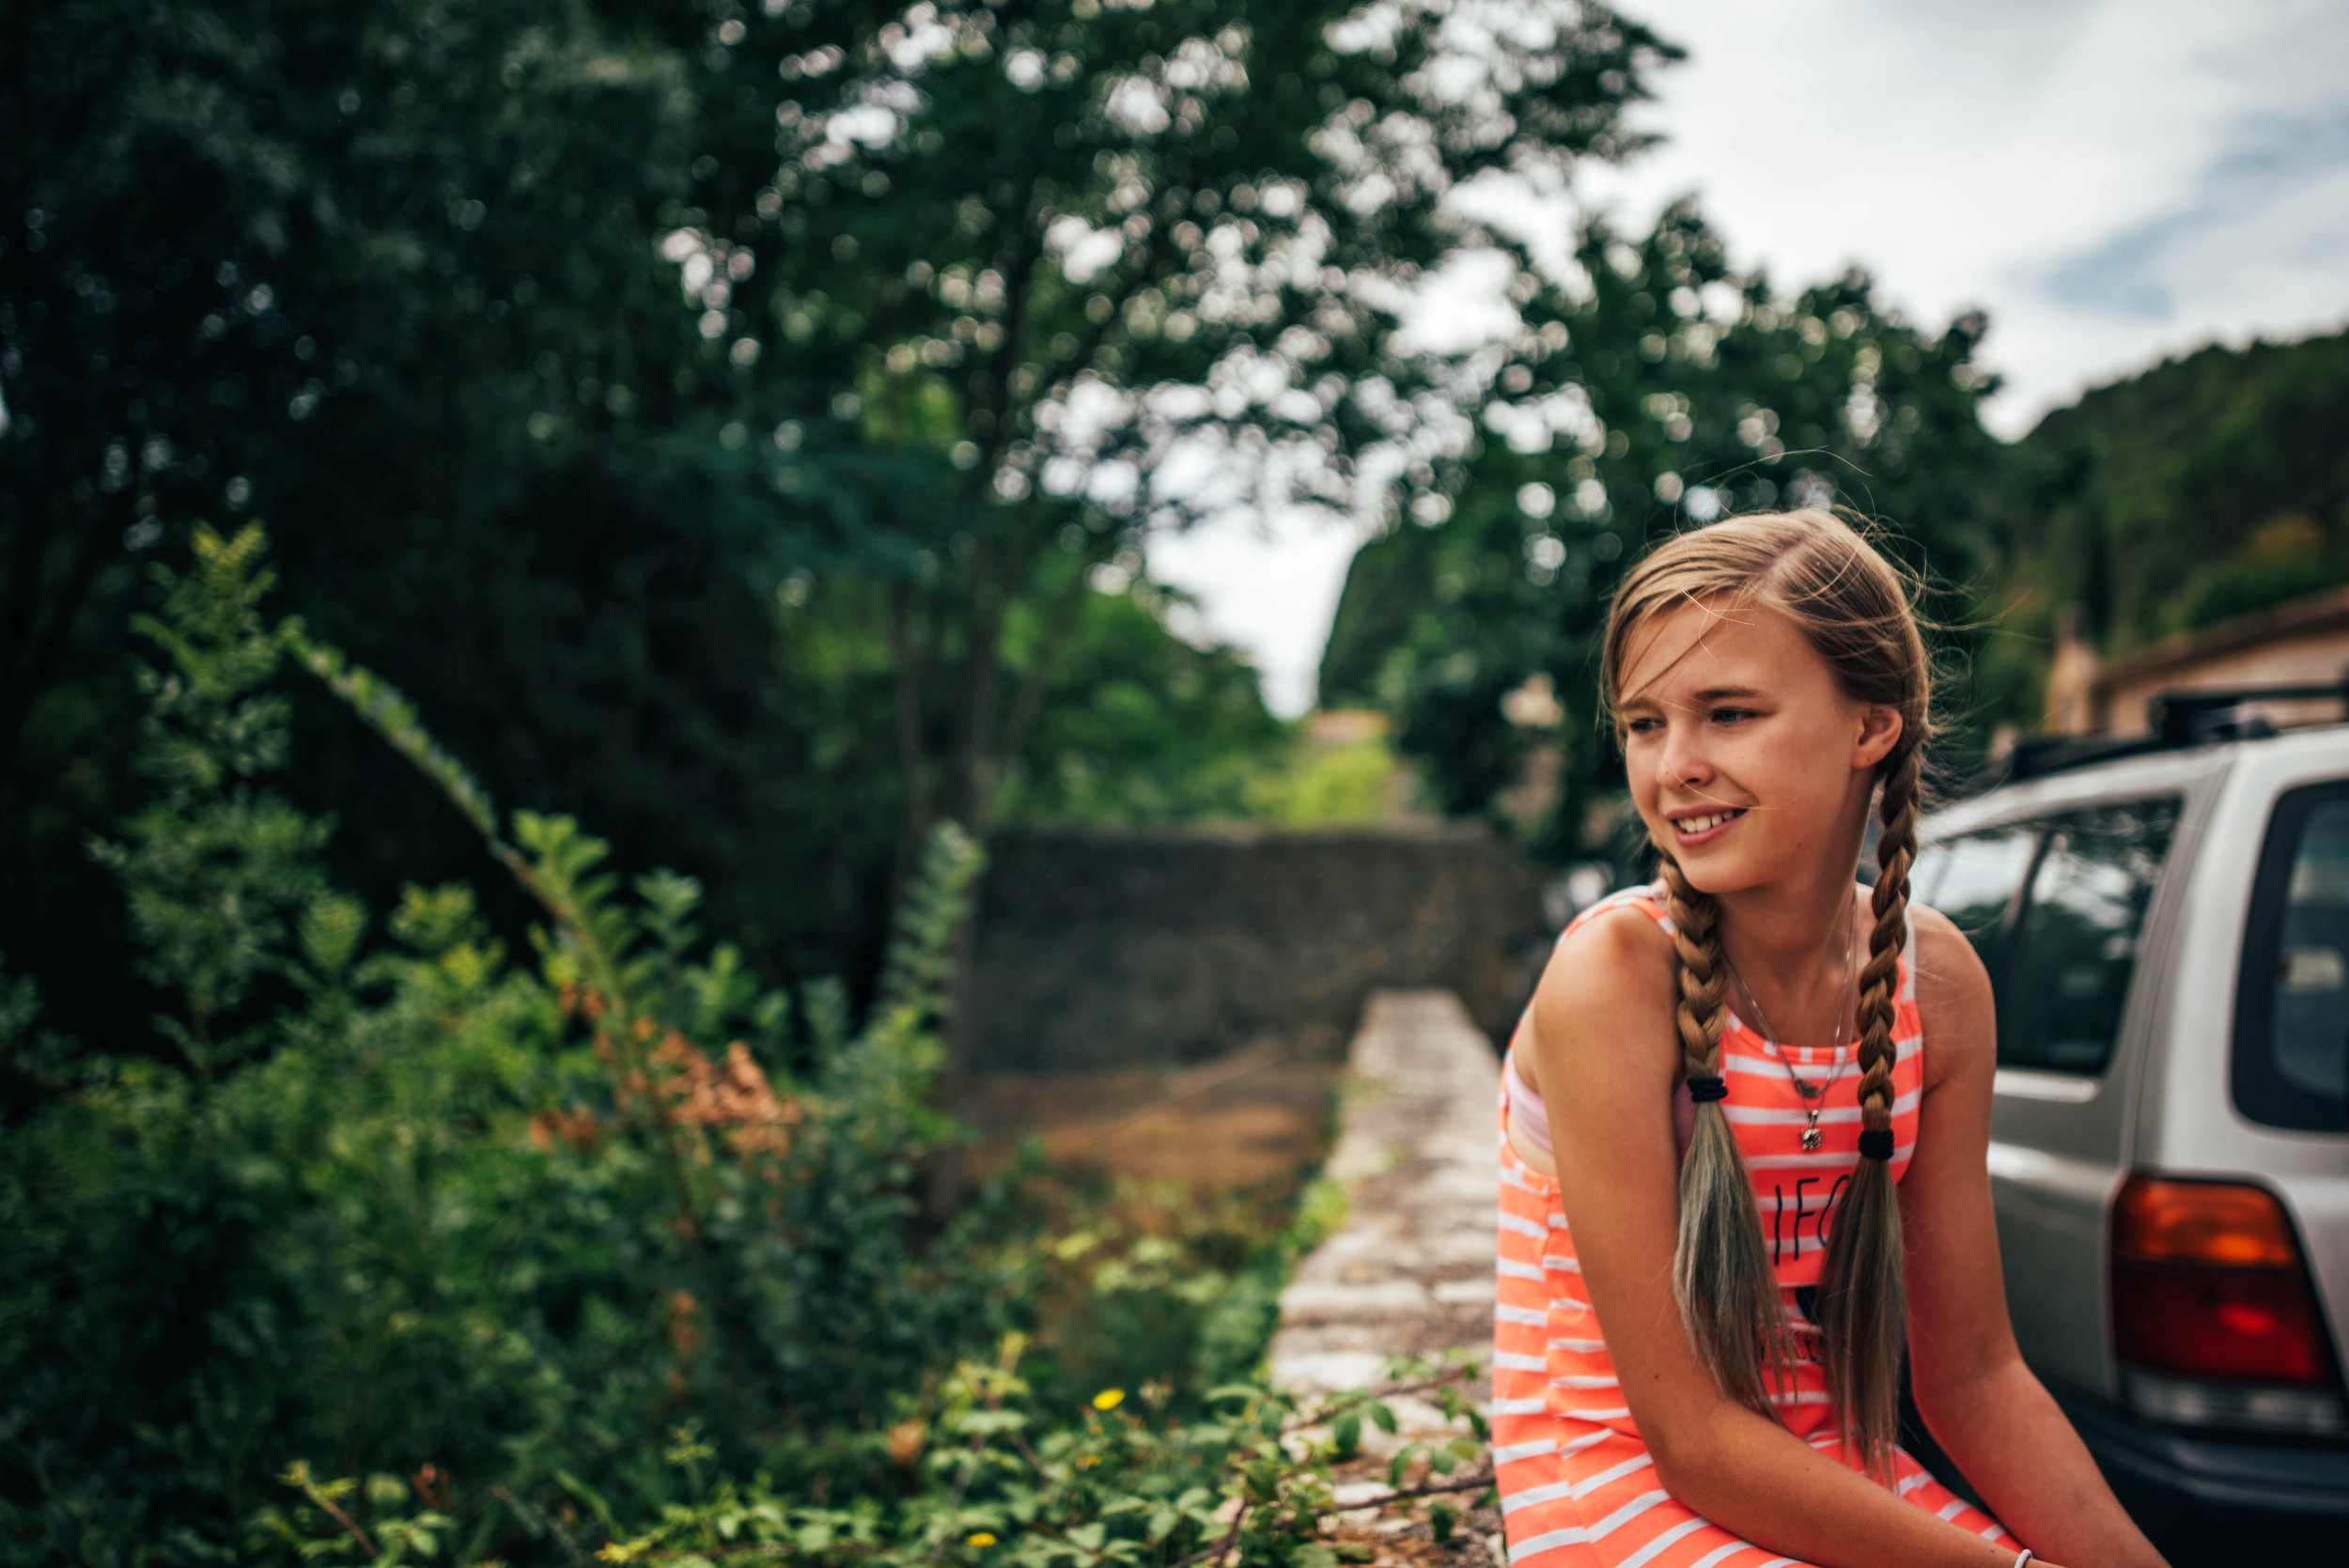 Girl sits on wall in Lagrasse France Essex UK Documentary Portrait Photographer